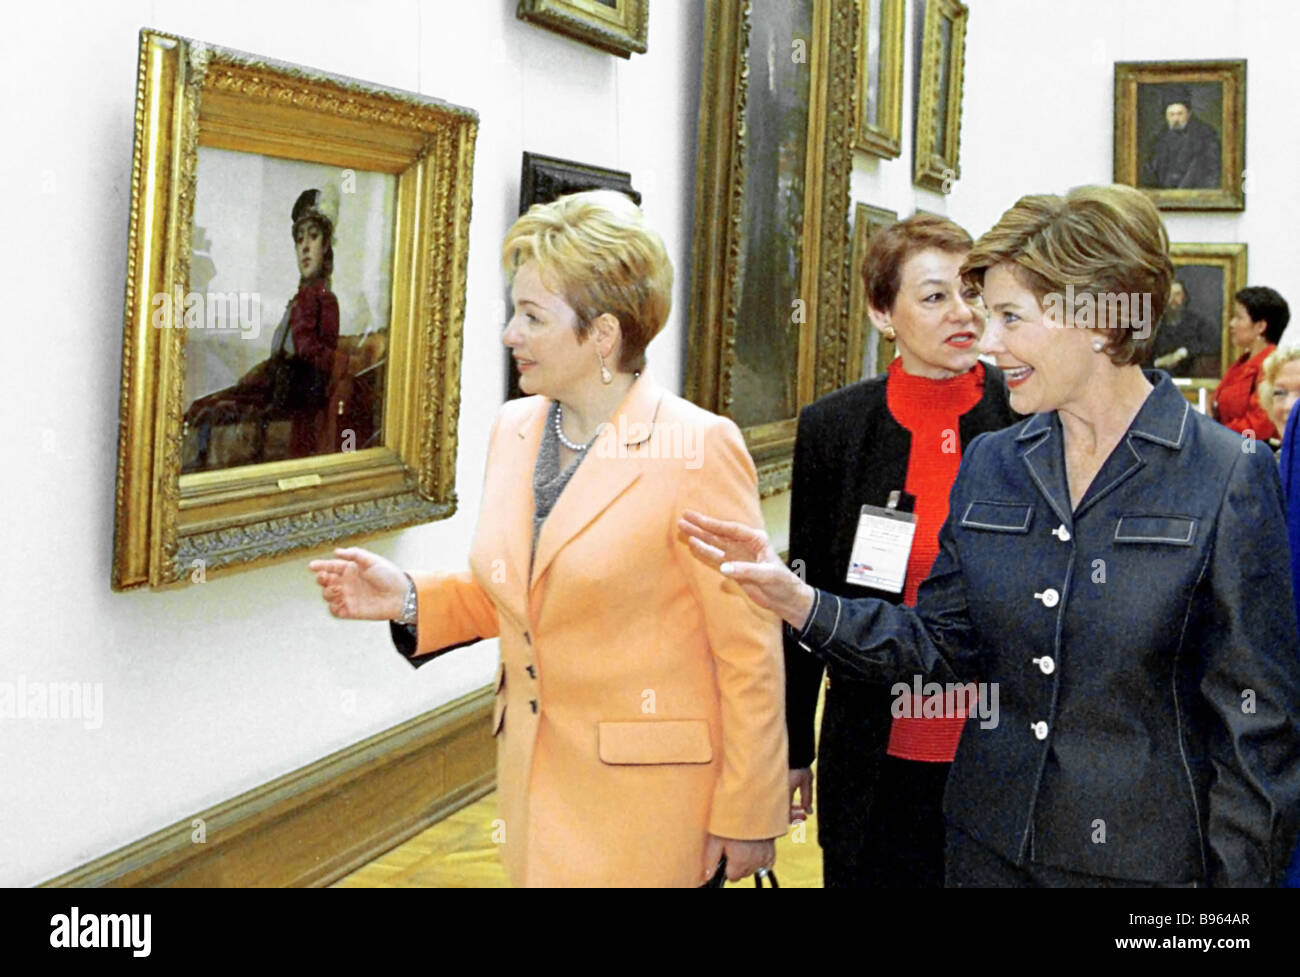 From left: Russian and U.S. First Ladies, Lyudmila Putina and Lora Bush, respectively, in front of Ivan Kramskoy's - Stock Image